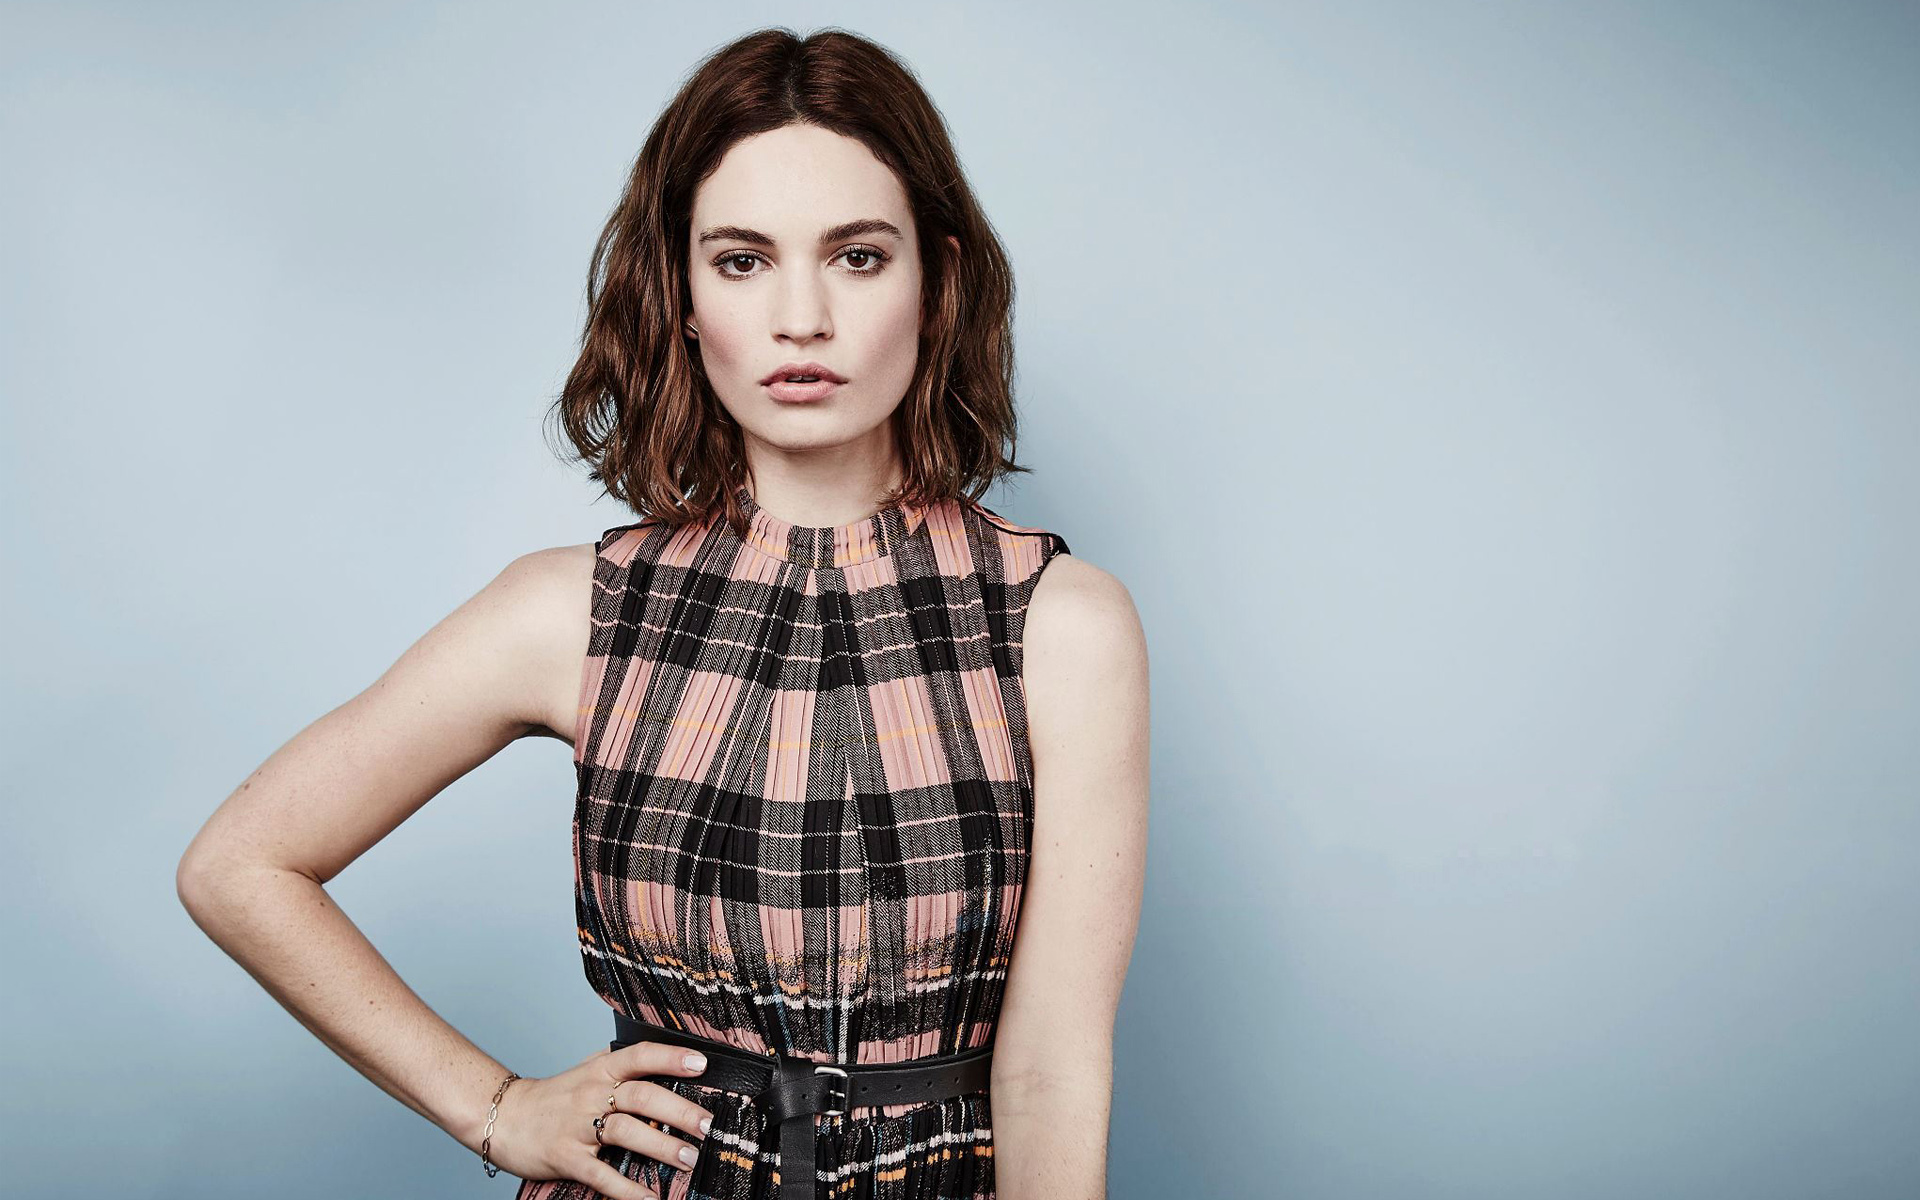 Lily James Image: Lily James Wallpapers Images Photos Pictures Backgrounds